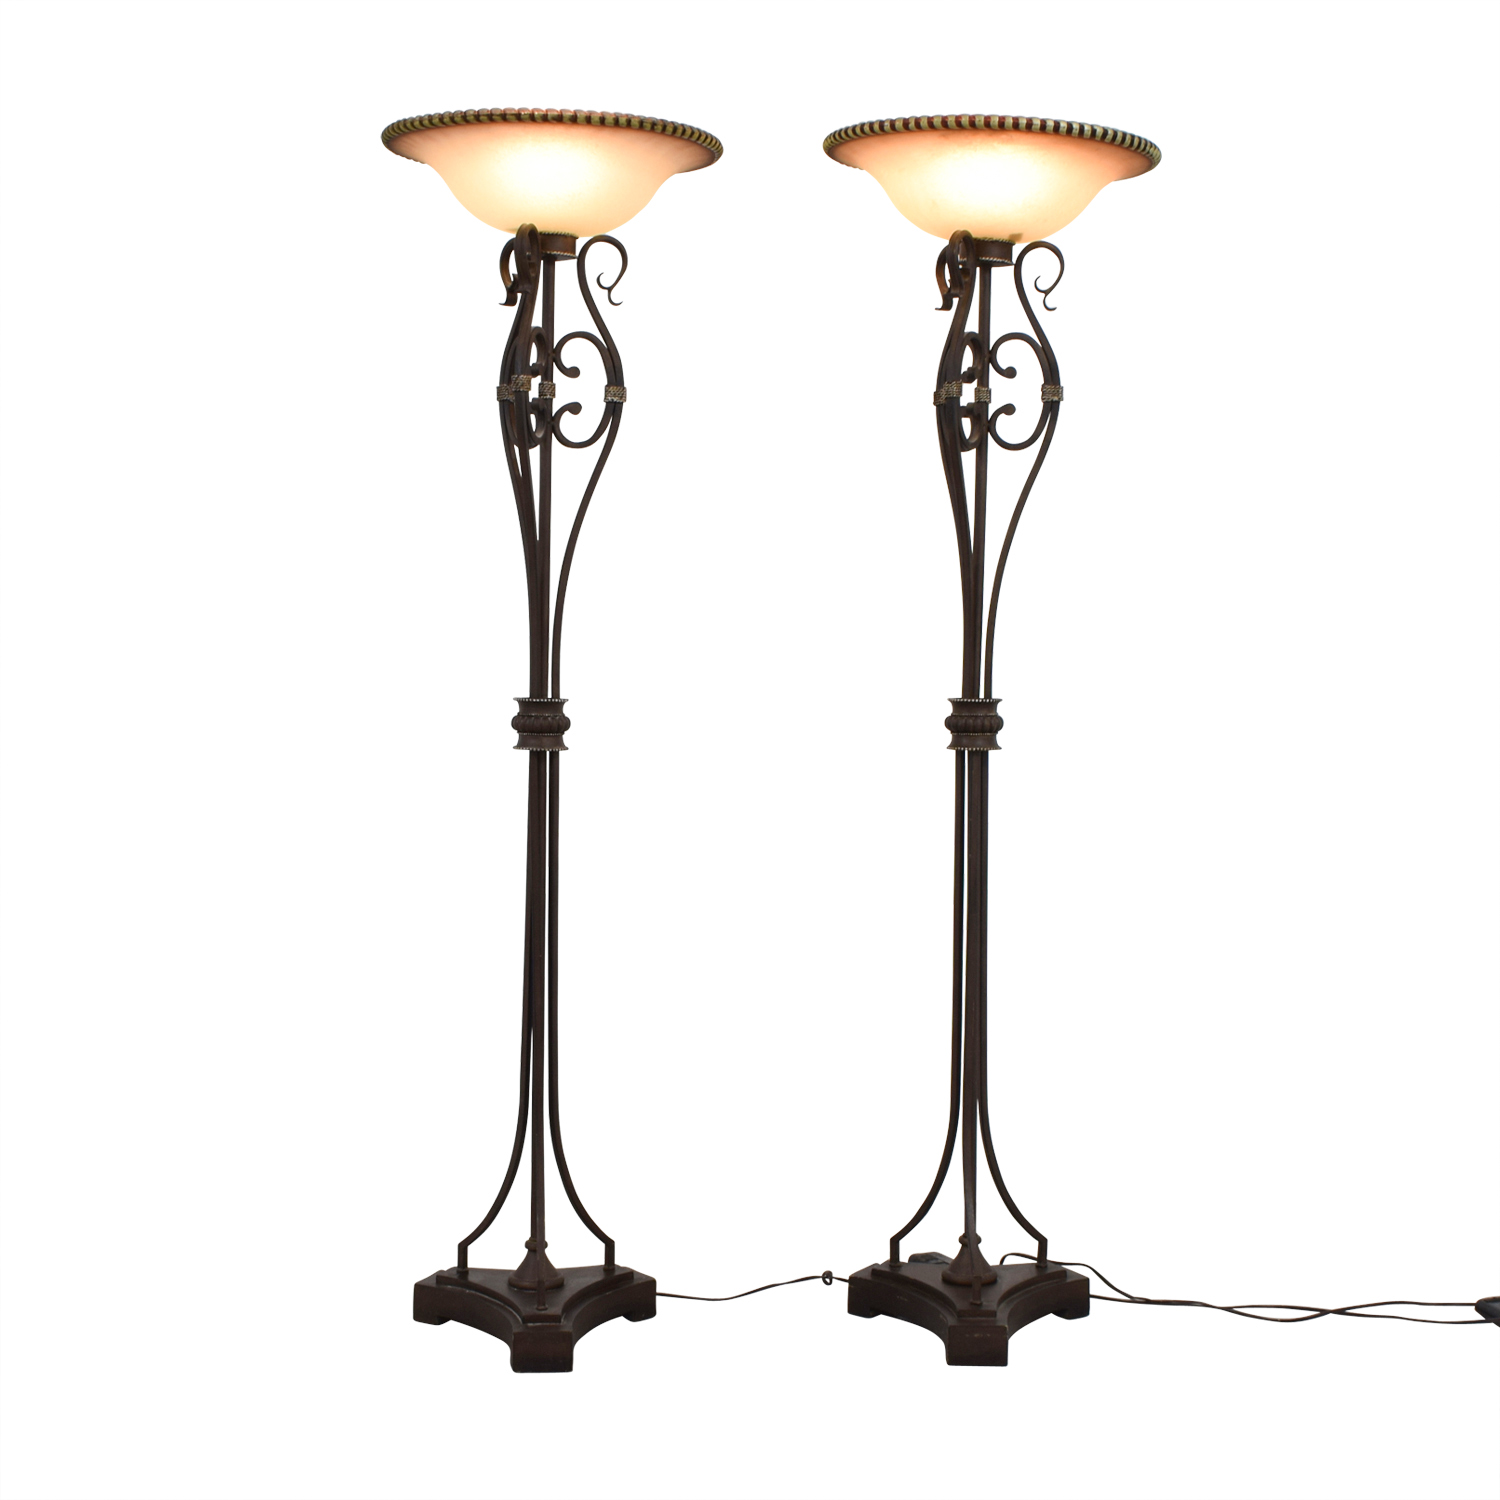 Uttermost Uttermost Metal and Glass Floor Lamps dimensions